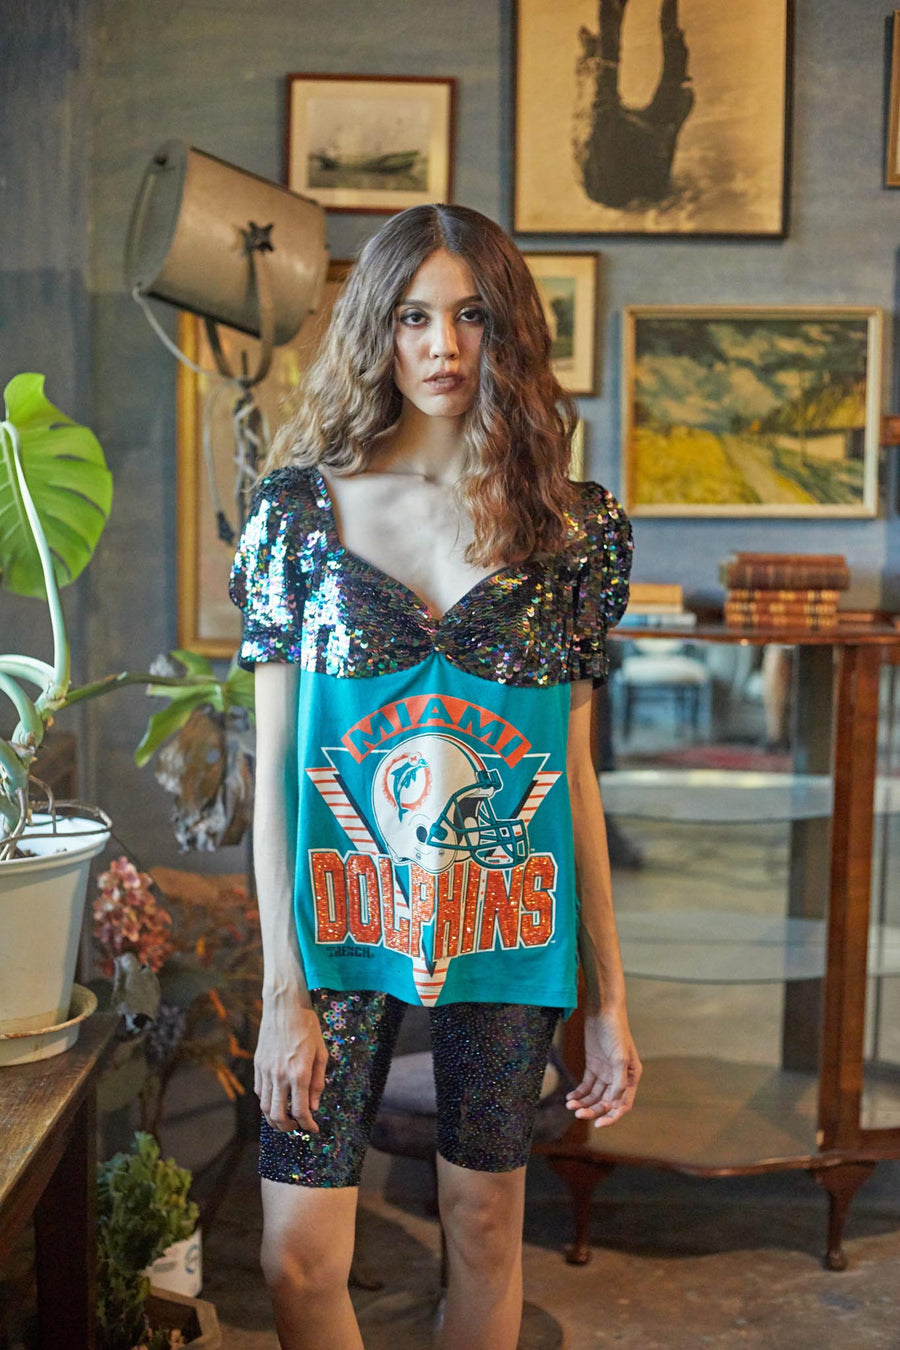 American Sports Mod Top - Miami Dolphins - I LOVE DIY by Panida